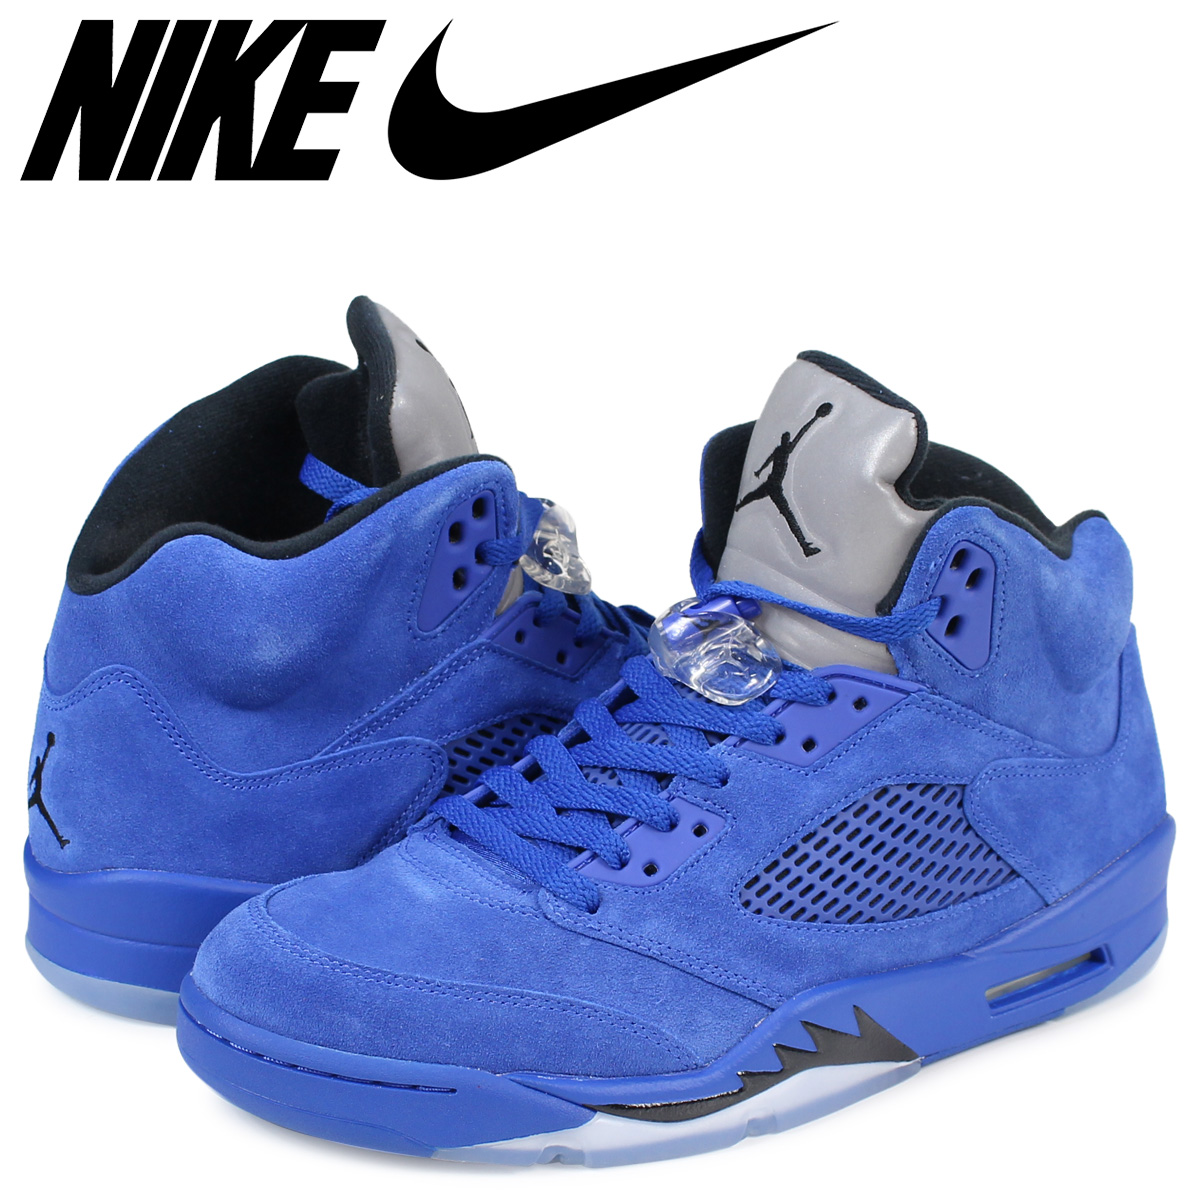 separation shoes b0fe7 61fc4 NIKE AIR JORDAN 5 RETRO Nike Air Jordan 5 nostalgic sneakers 136,027-401  men's shoes blue [1711]